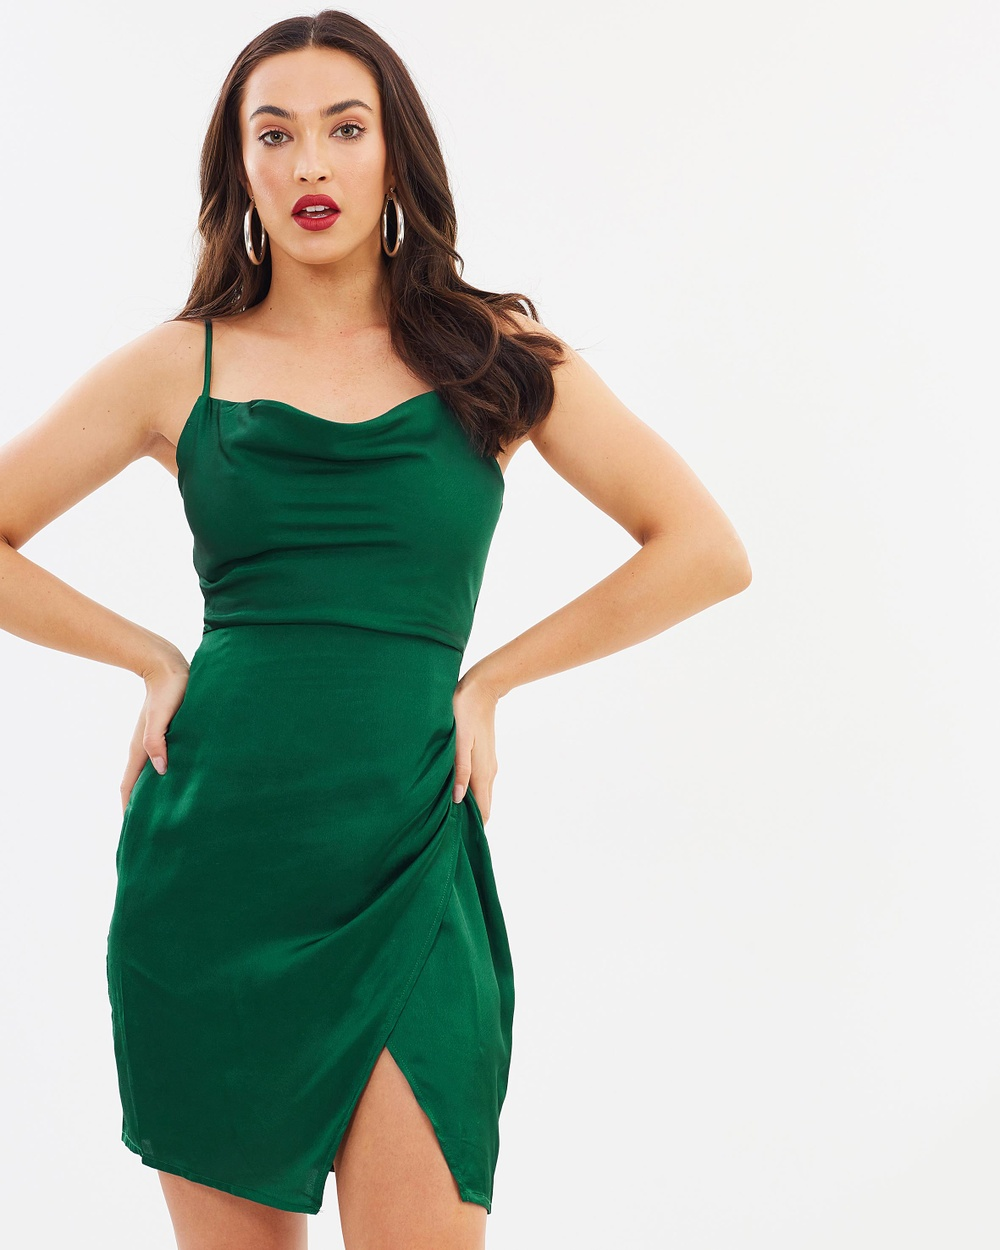 Missguided Satin Strappy Cowl Neck Mini Dress Bodycon Dresses Emerald Satin Strappy Cowl Neck Mini Dress